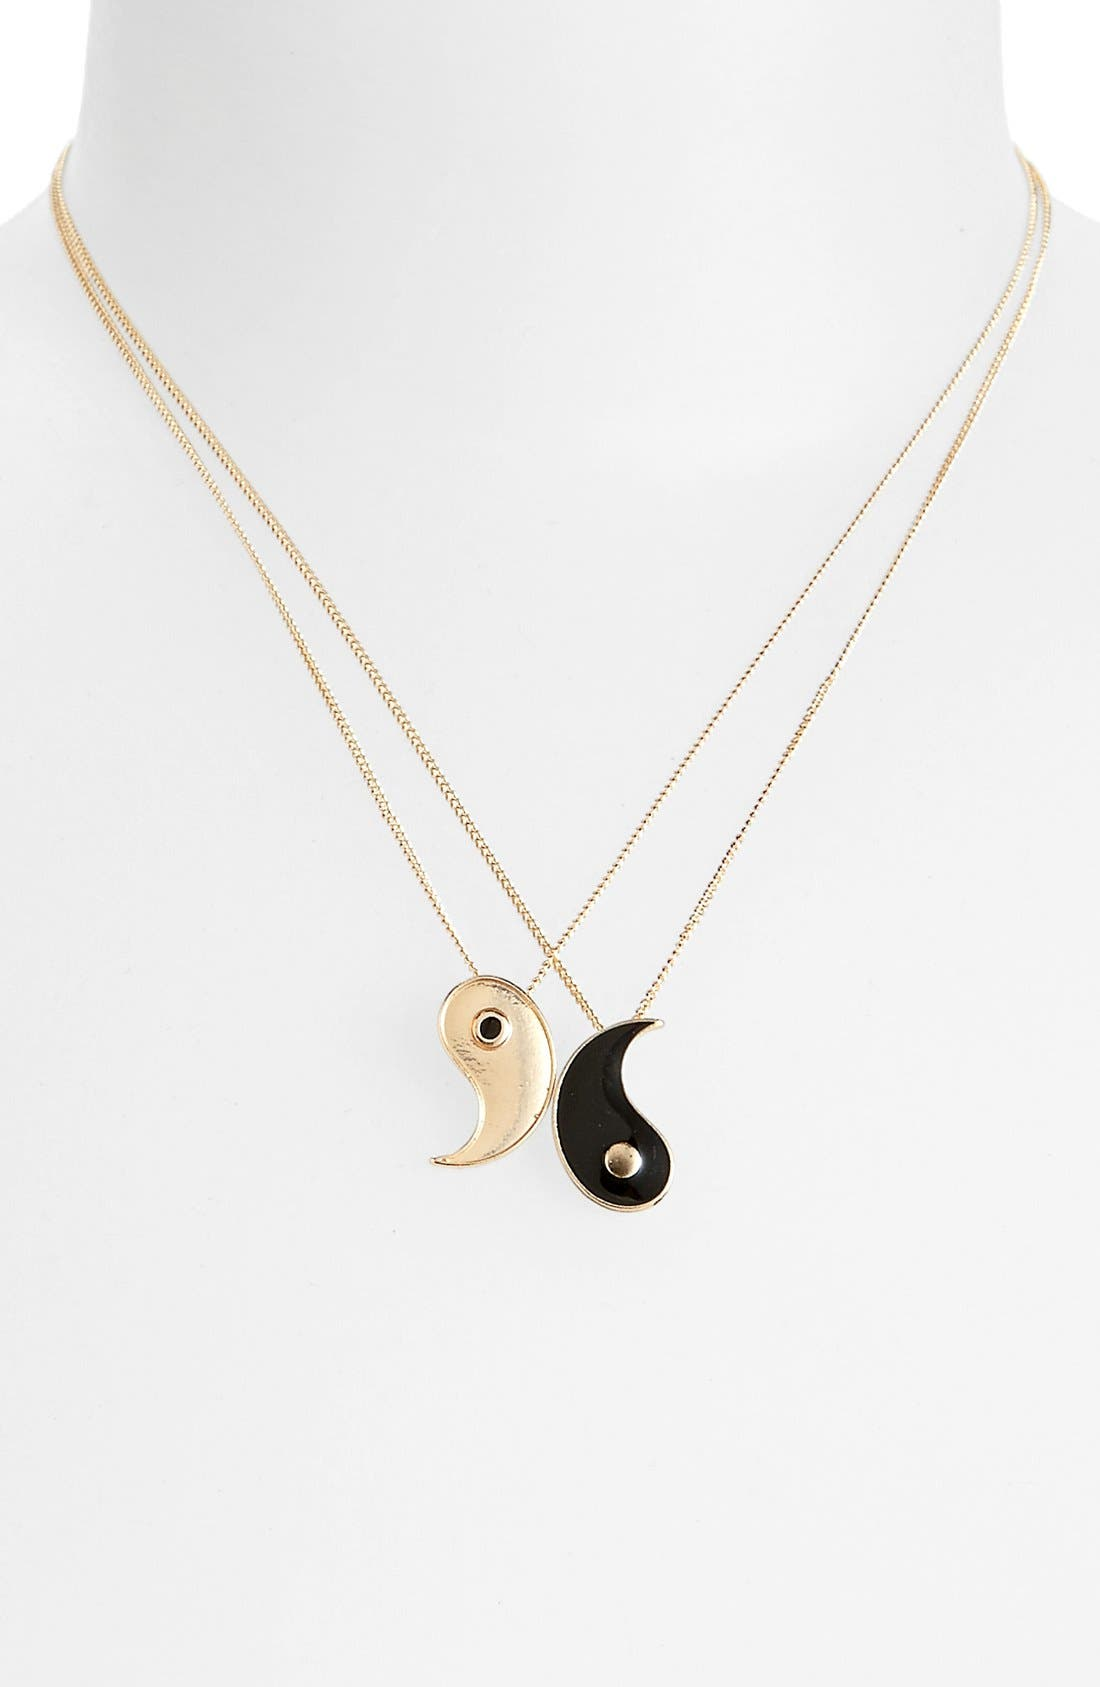 Alternate Image 1 Selected - Topshop Yin Yang Necklaces (Set of 2)